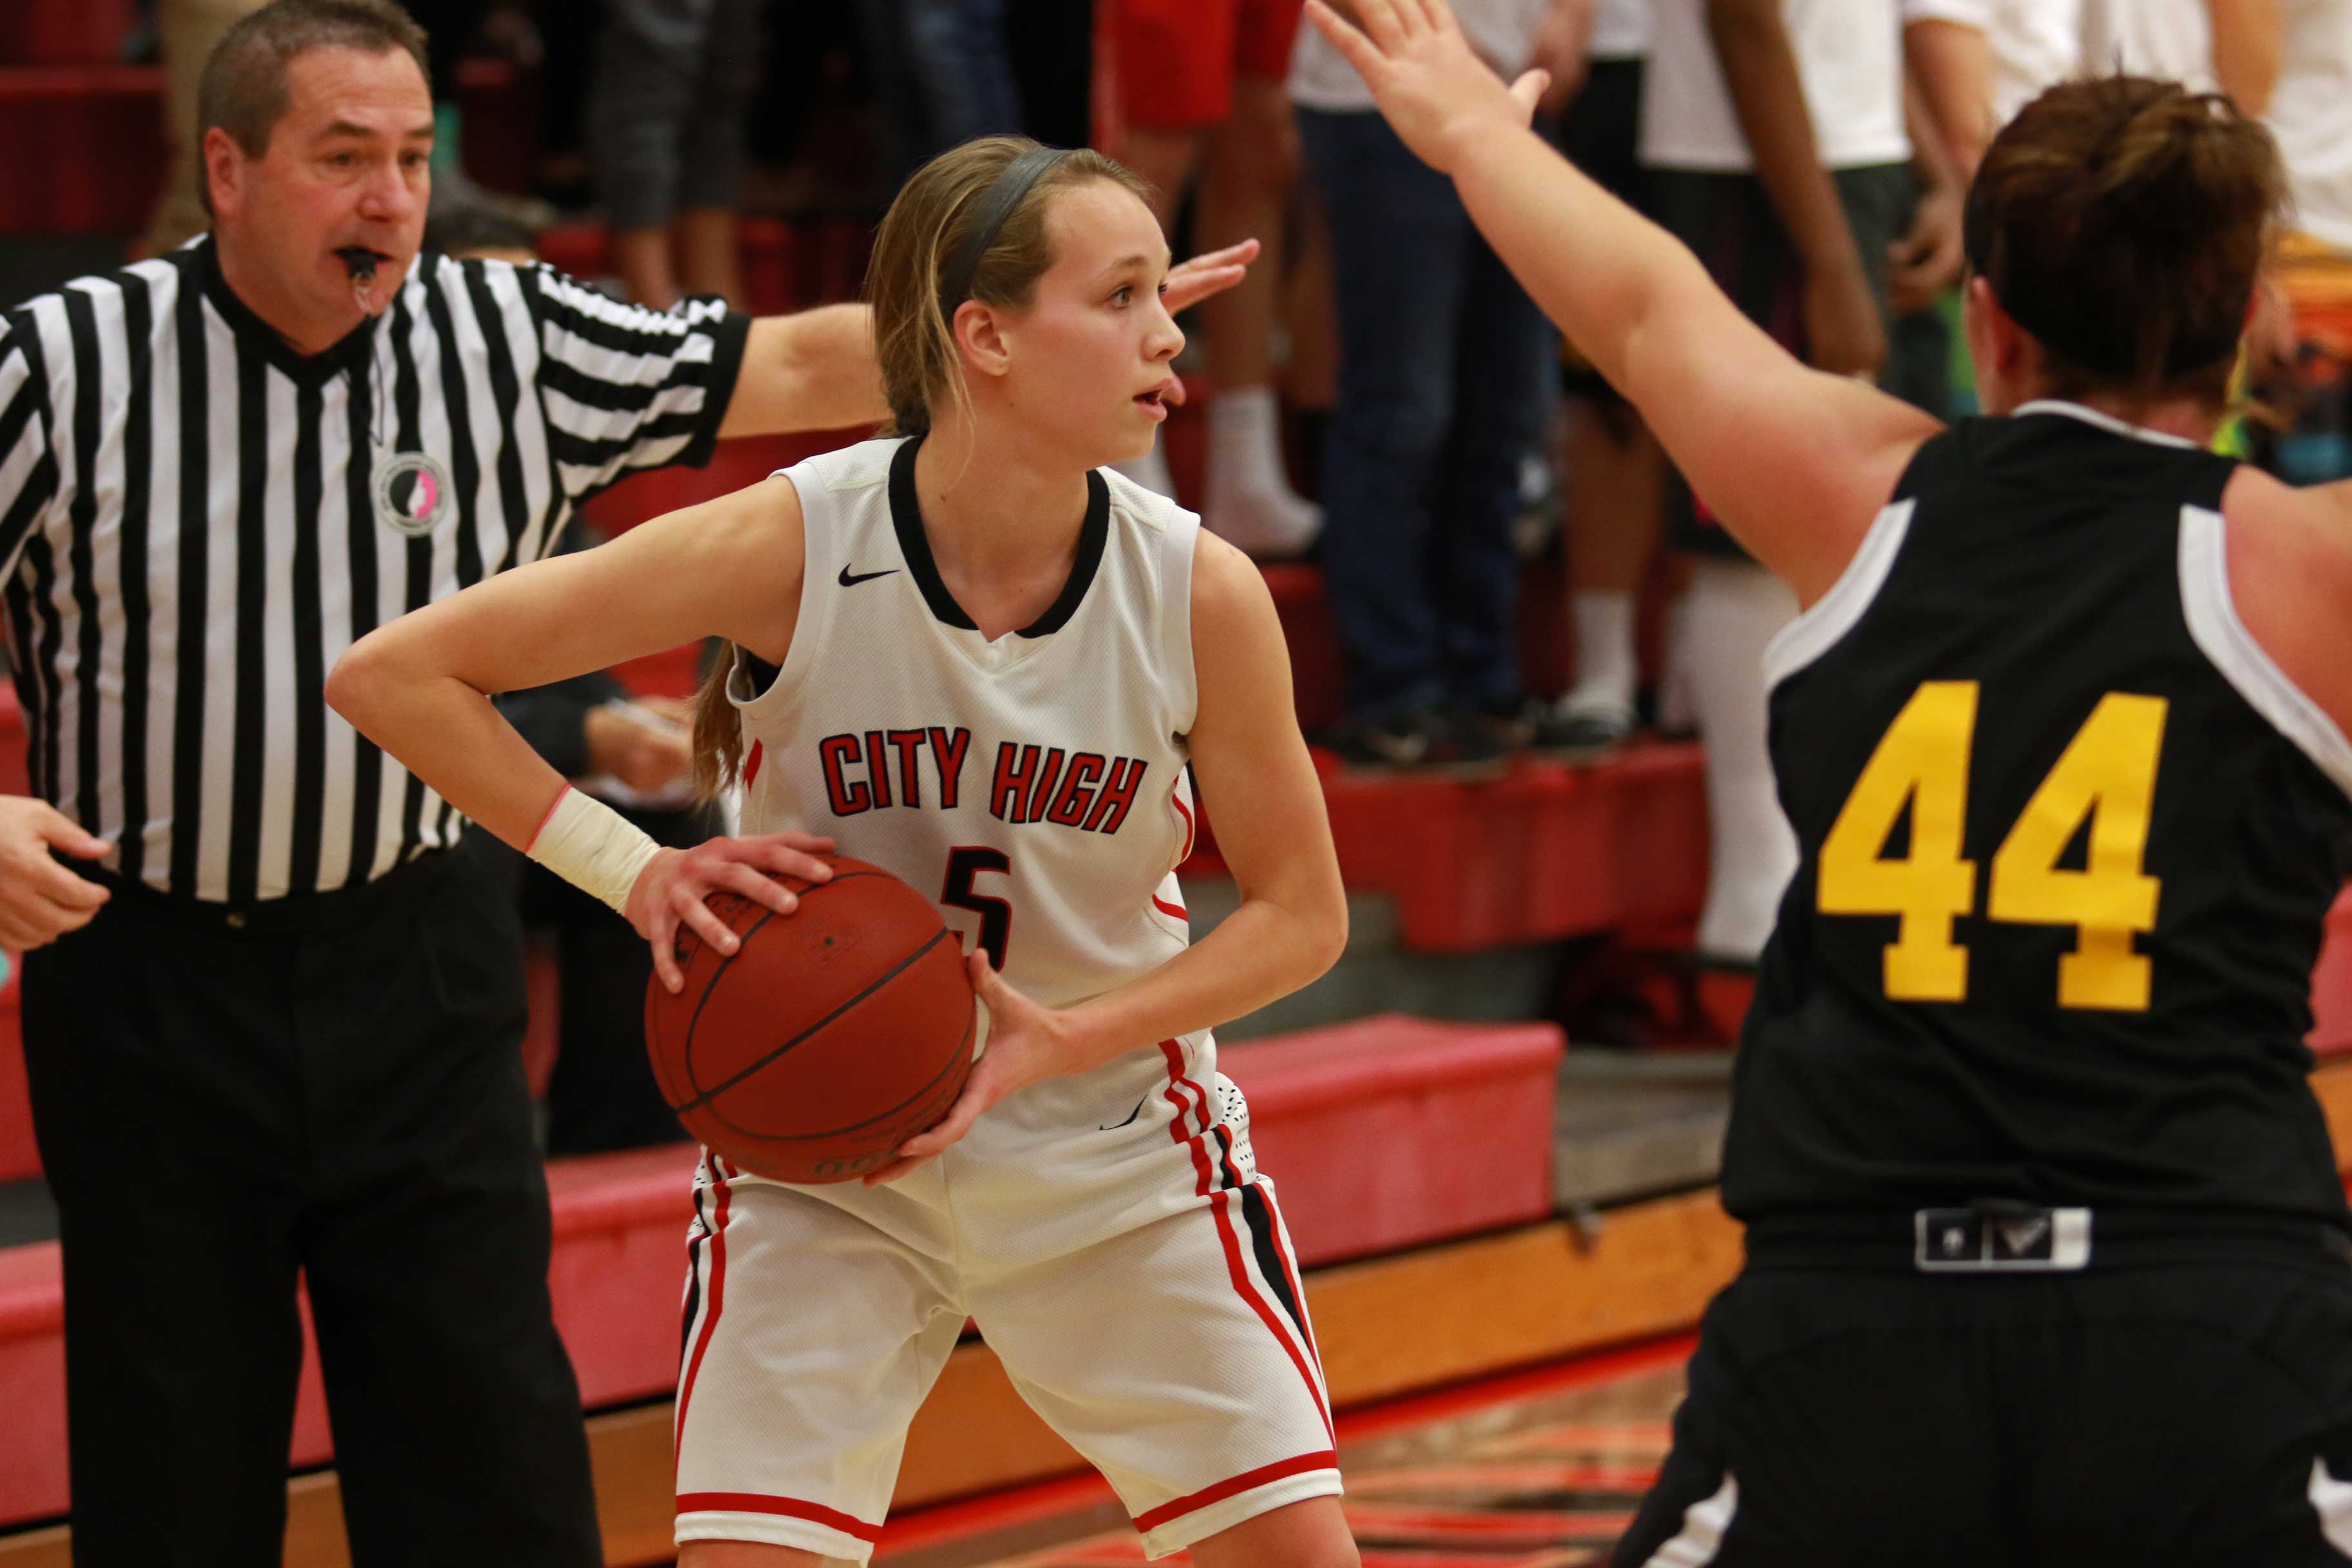 Sydney+Schroder+%2717+looks+to+a+teammate+to+pass+to+in+the+first+half+against+Southeast+Polk.